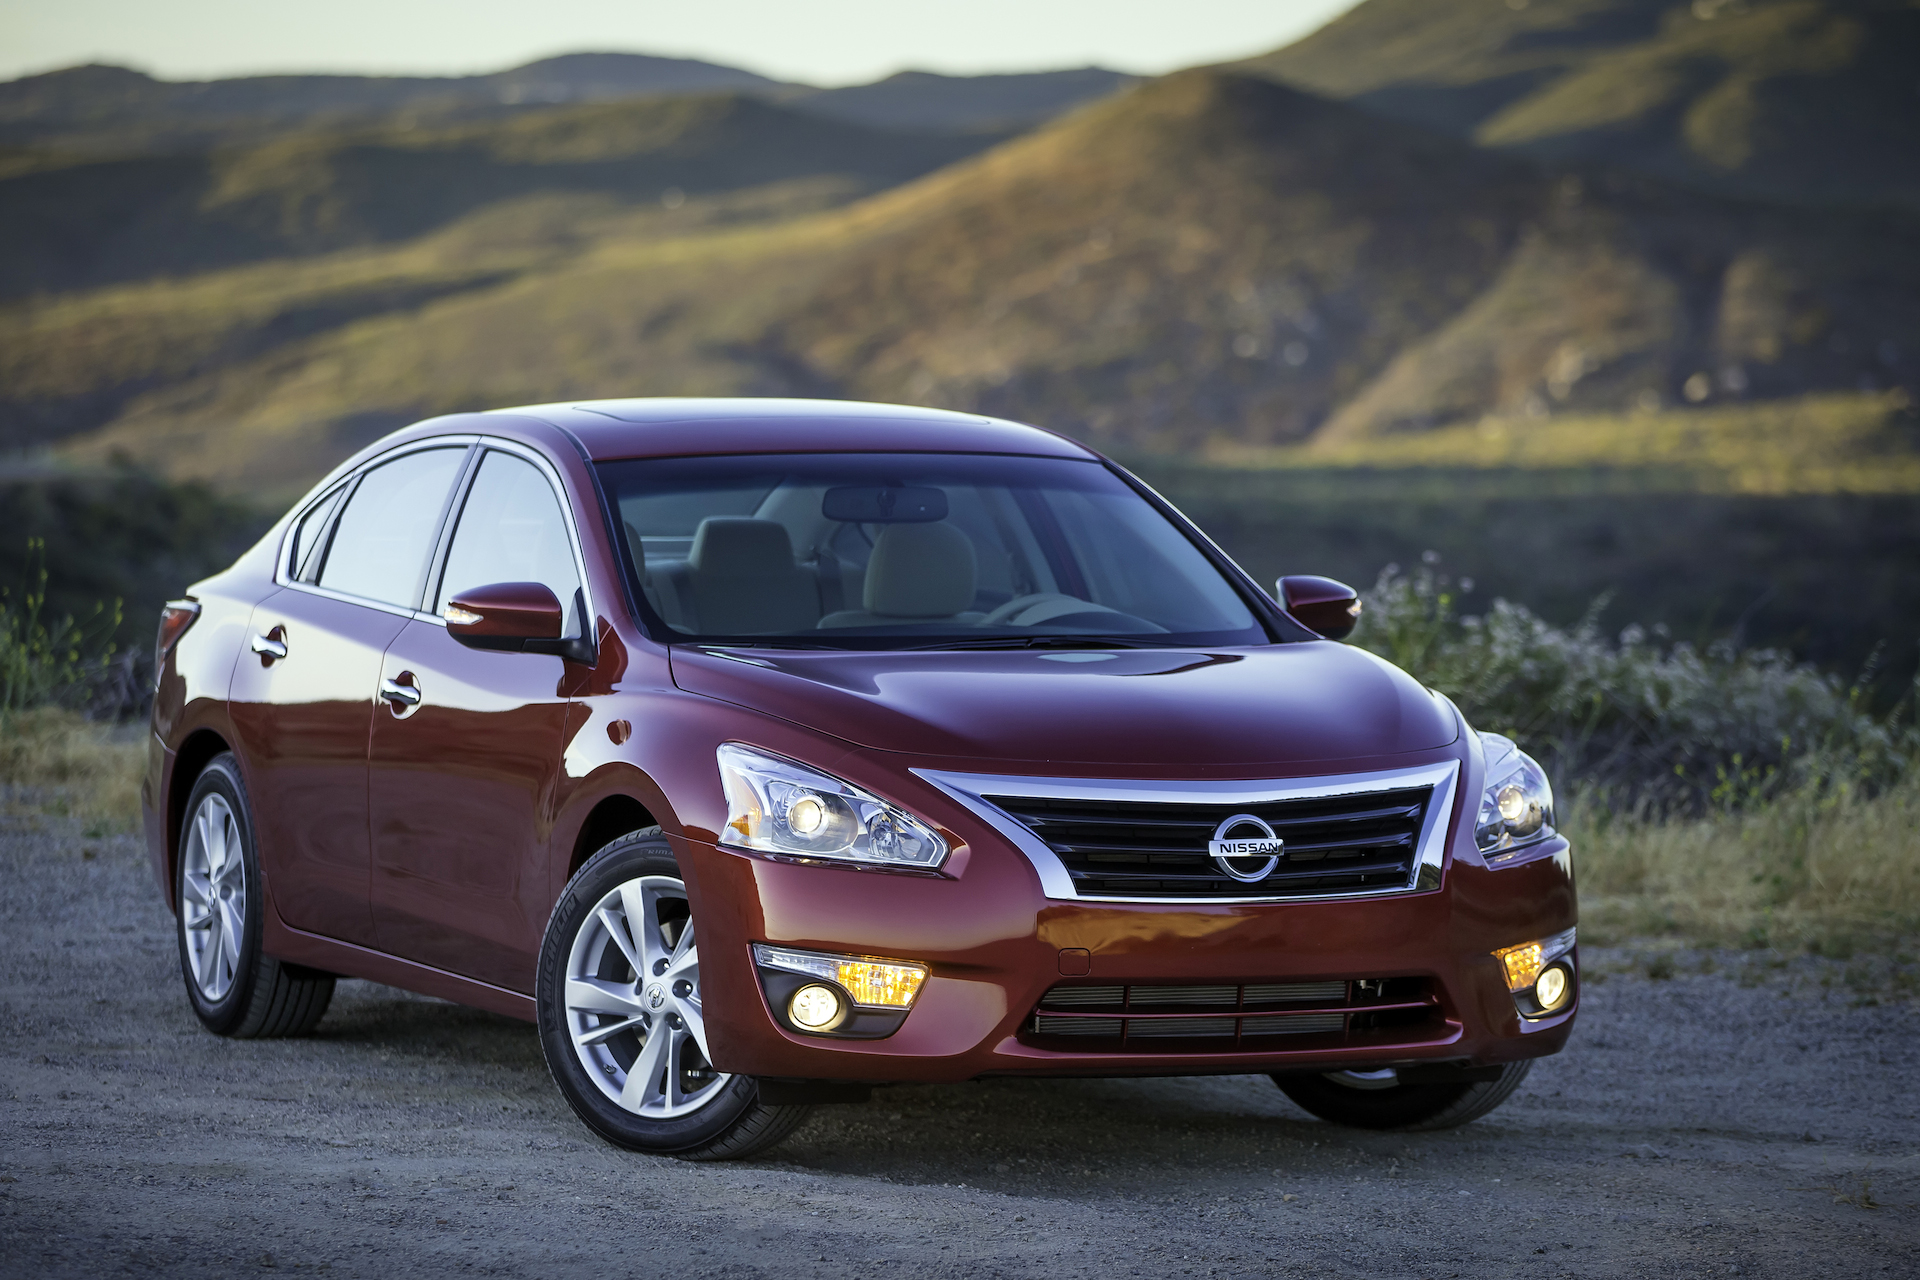 new and used nissan altima prices photos reviews specs the car connection. Black Bedroom Furniture Sets. Home Design Ideas